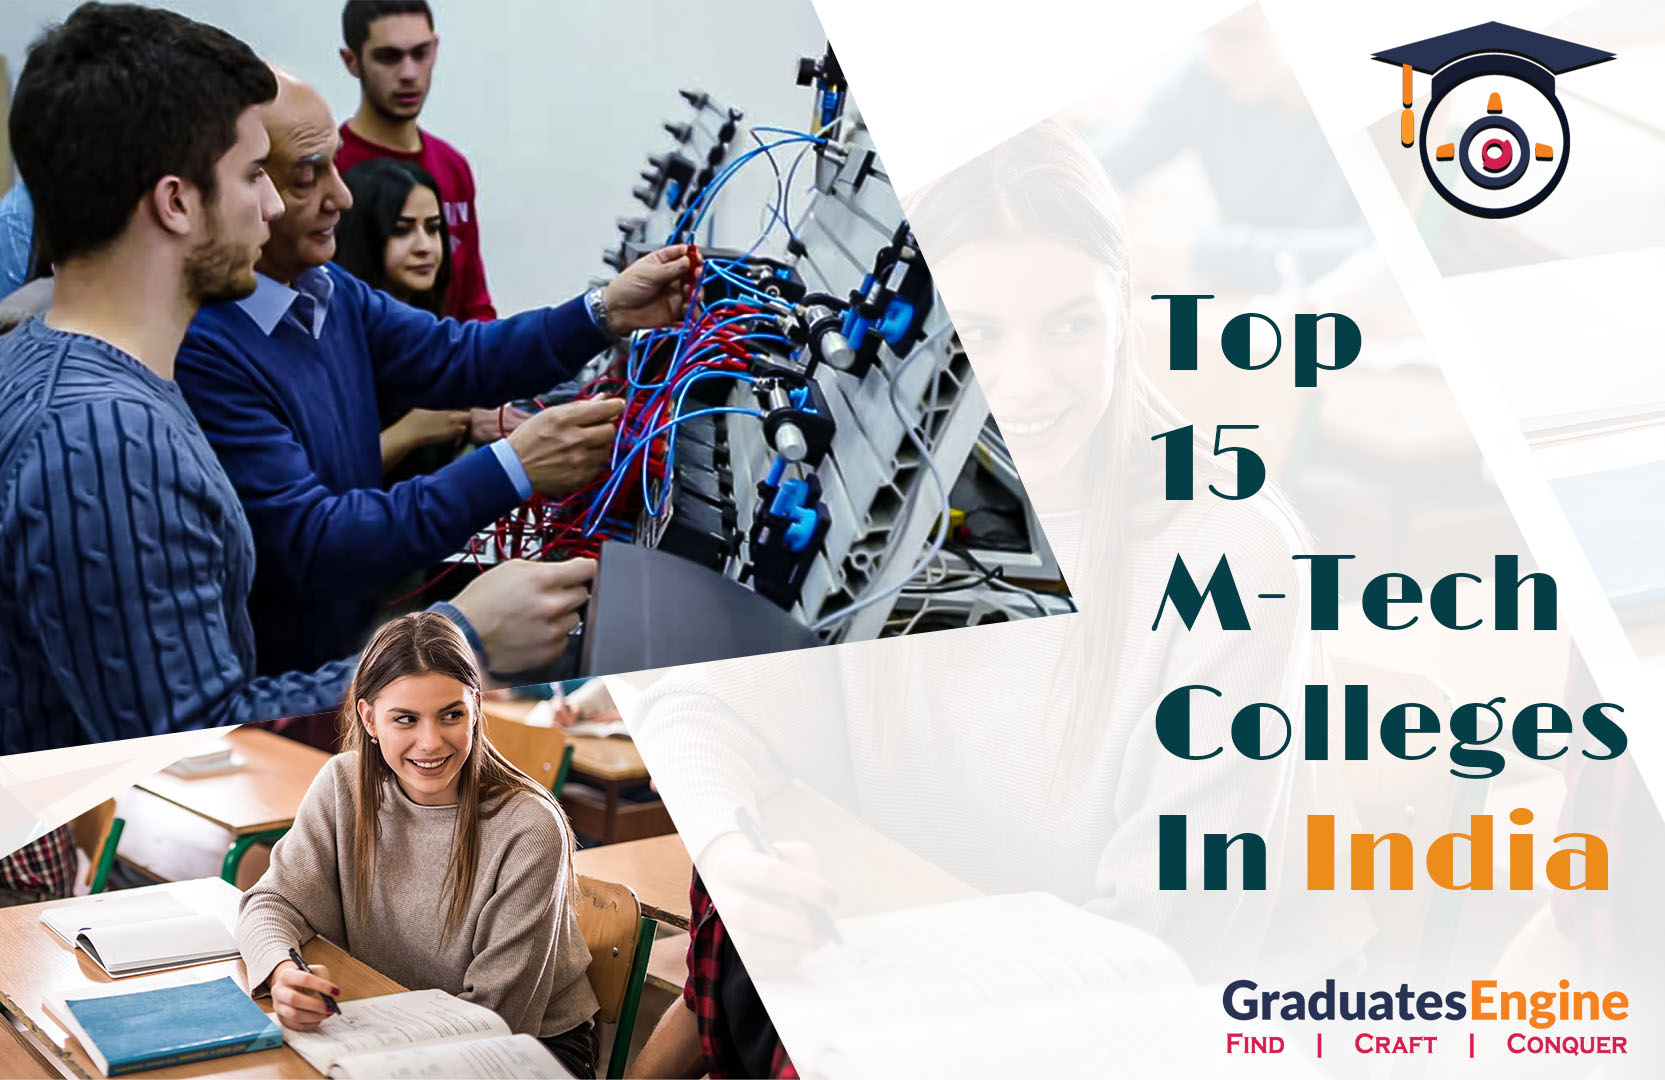 Top Fifteen M-Tech Colleges In India | Top M-Tech Colleges in India